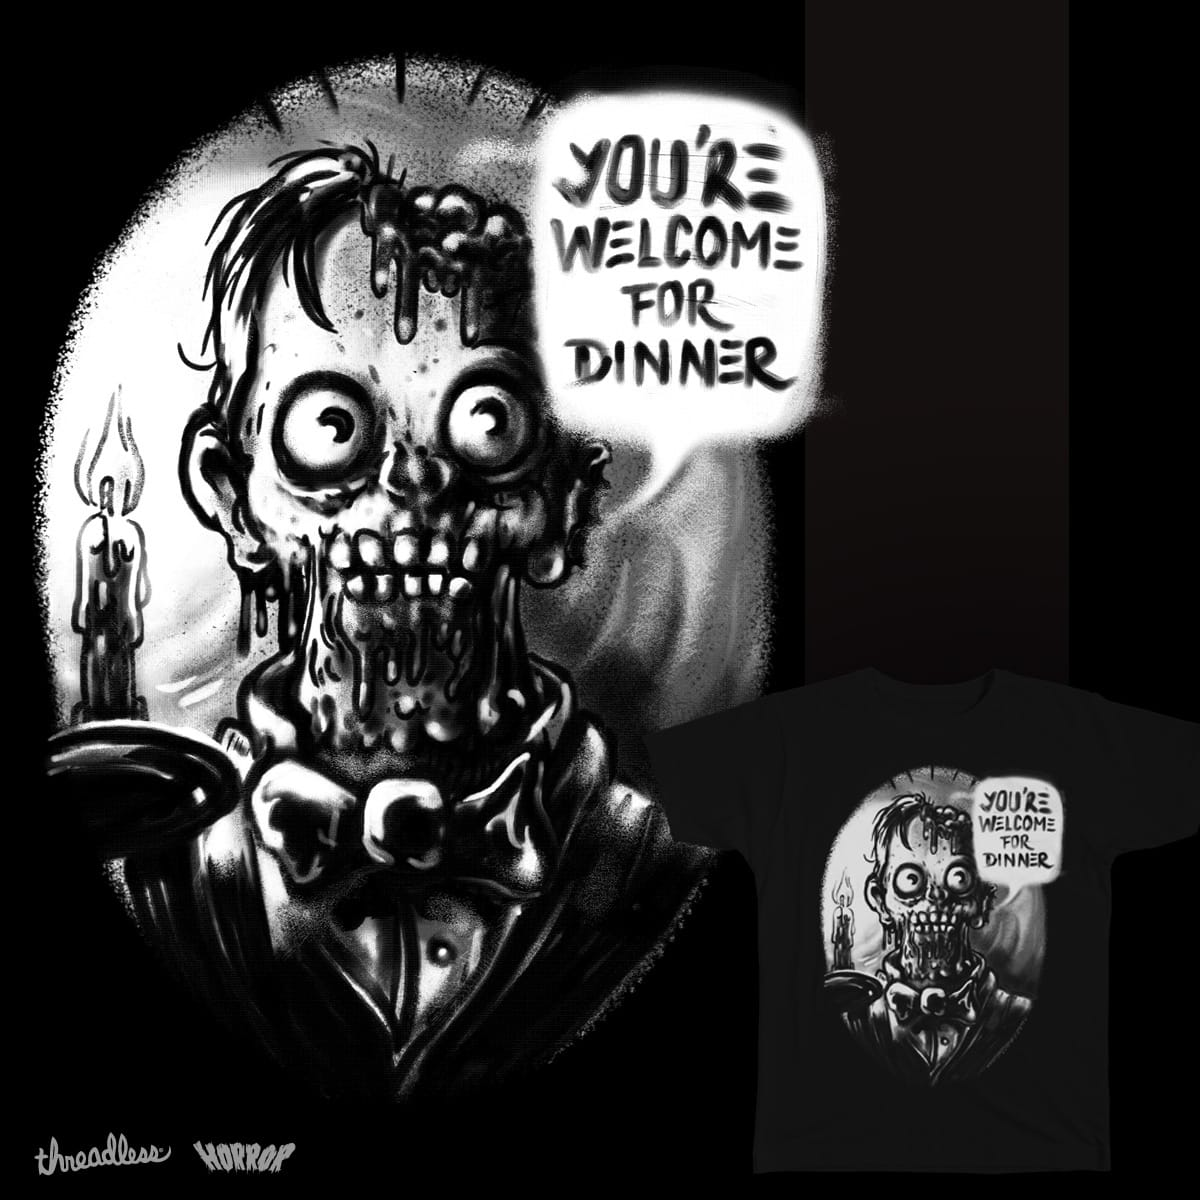 Dinner is Ready by Gums. on Threadless